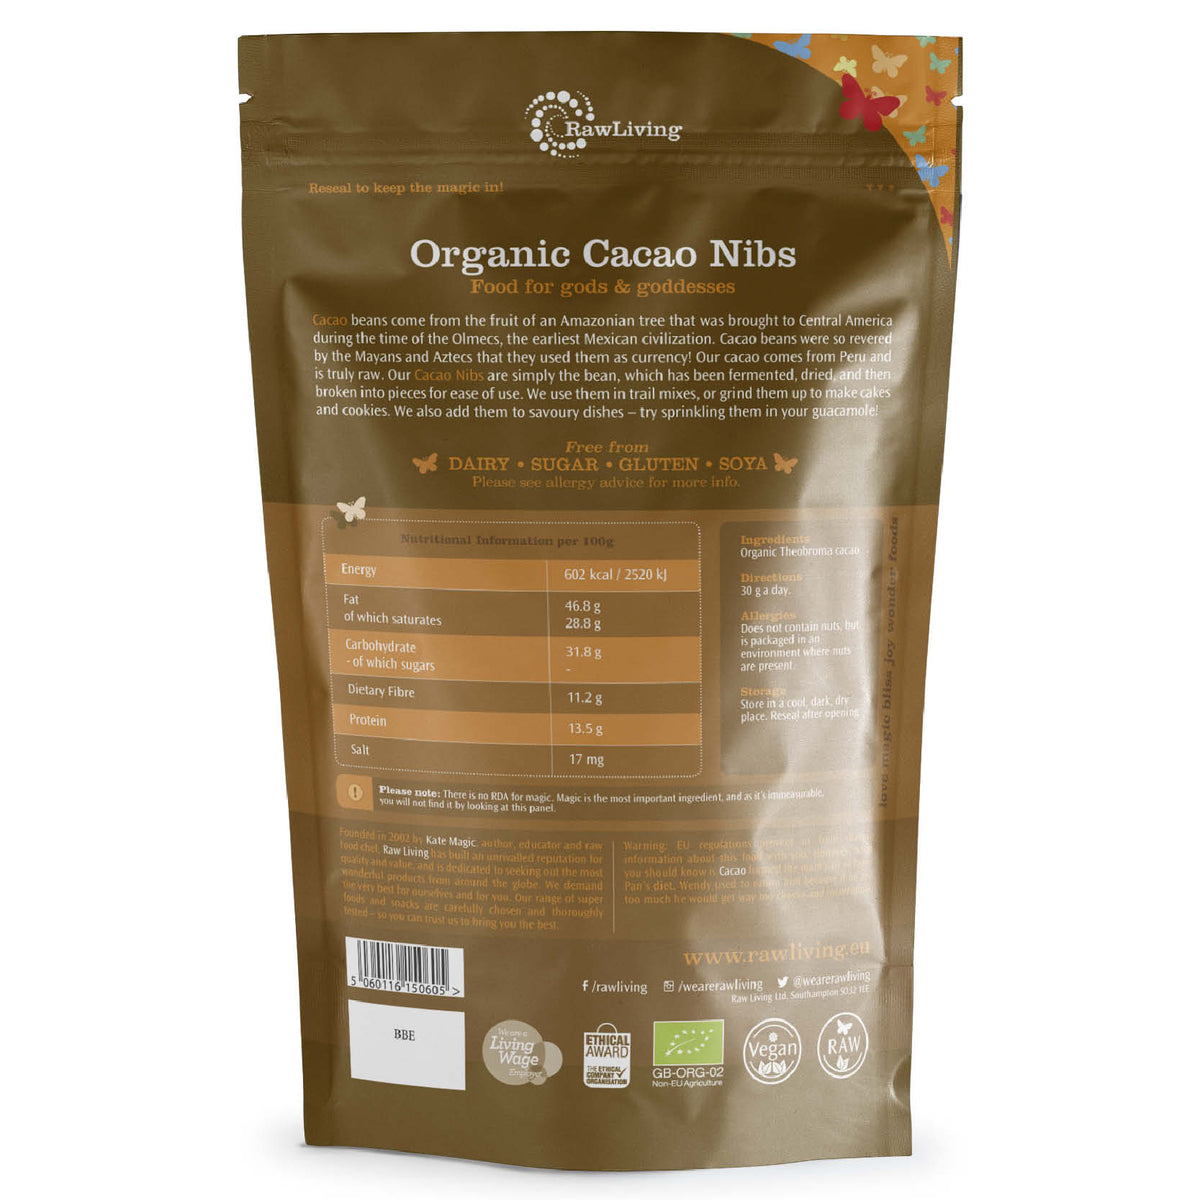 Organic Cacao Nibs Peruvian | Raw Living UK | Raw Foods